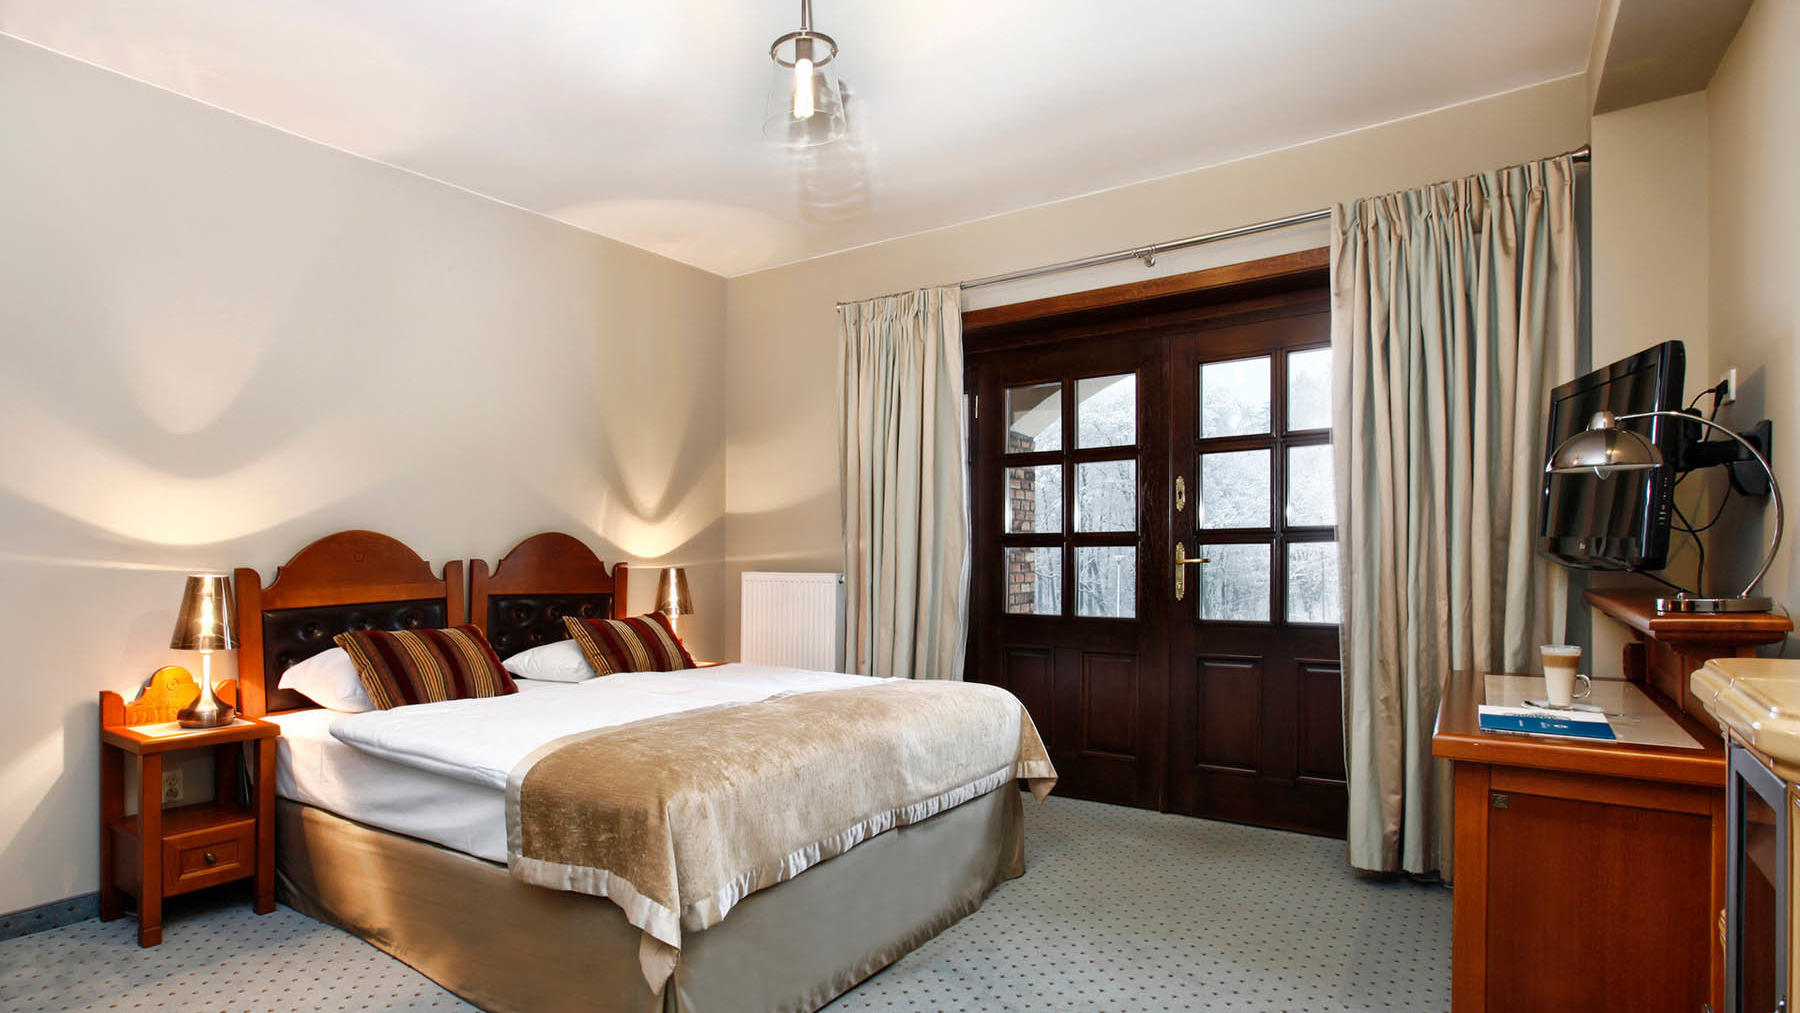 Family suite in the guesthouse offer details